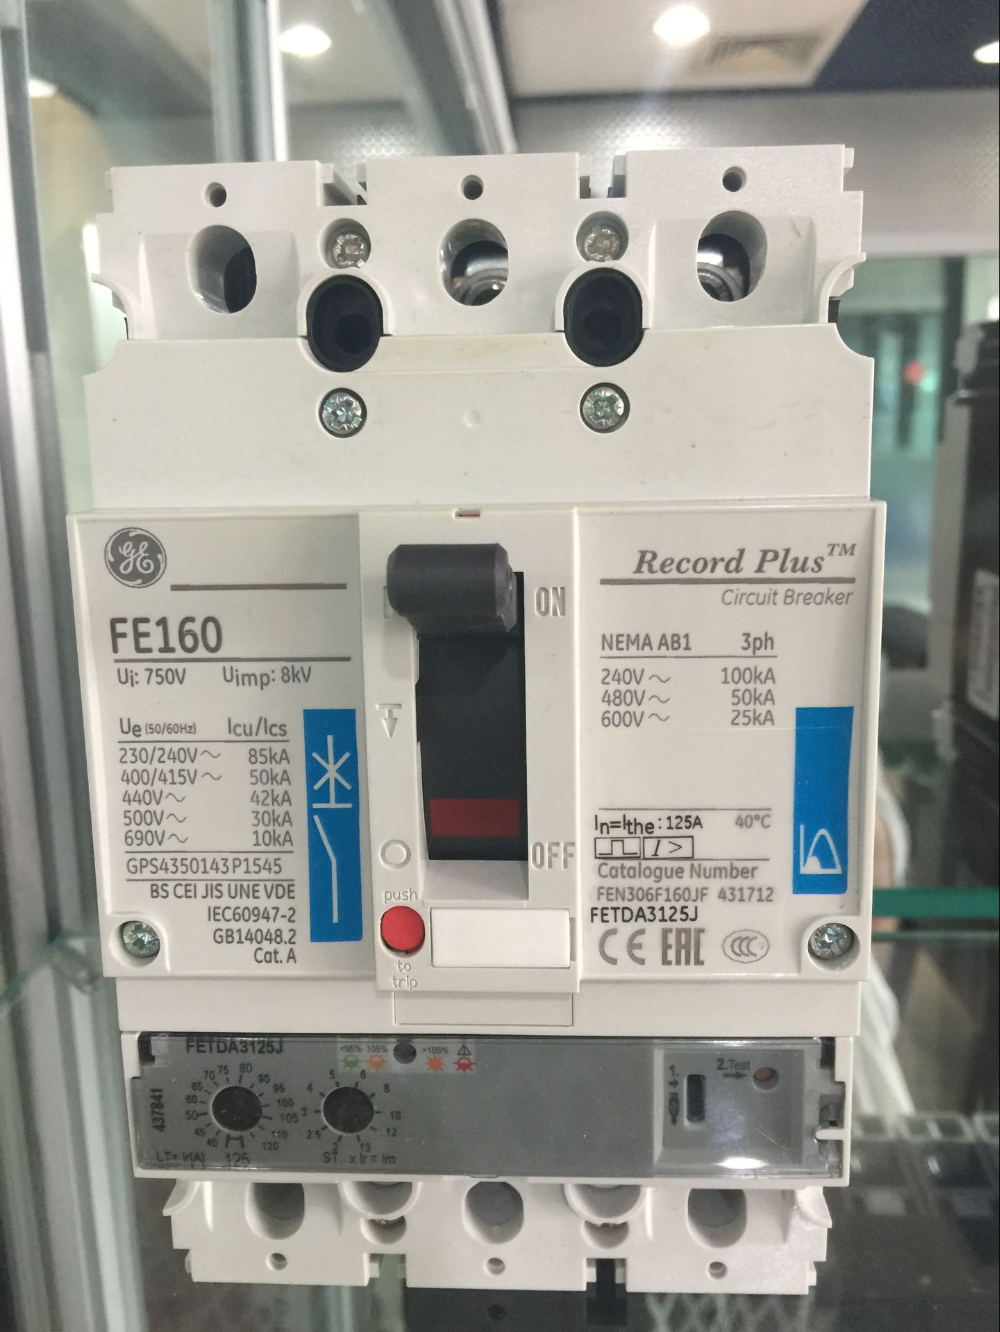 Jackwell Rosemount Yokogawa Ge Products Supplierge Electrical Circuit Breakers For Sale Dc Breaker Electronic Distribution Molded Case Reco